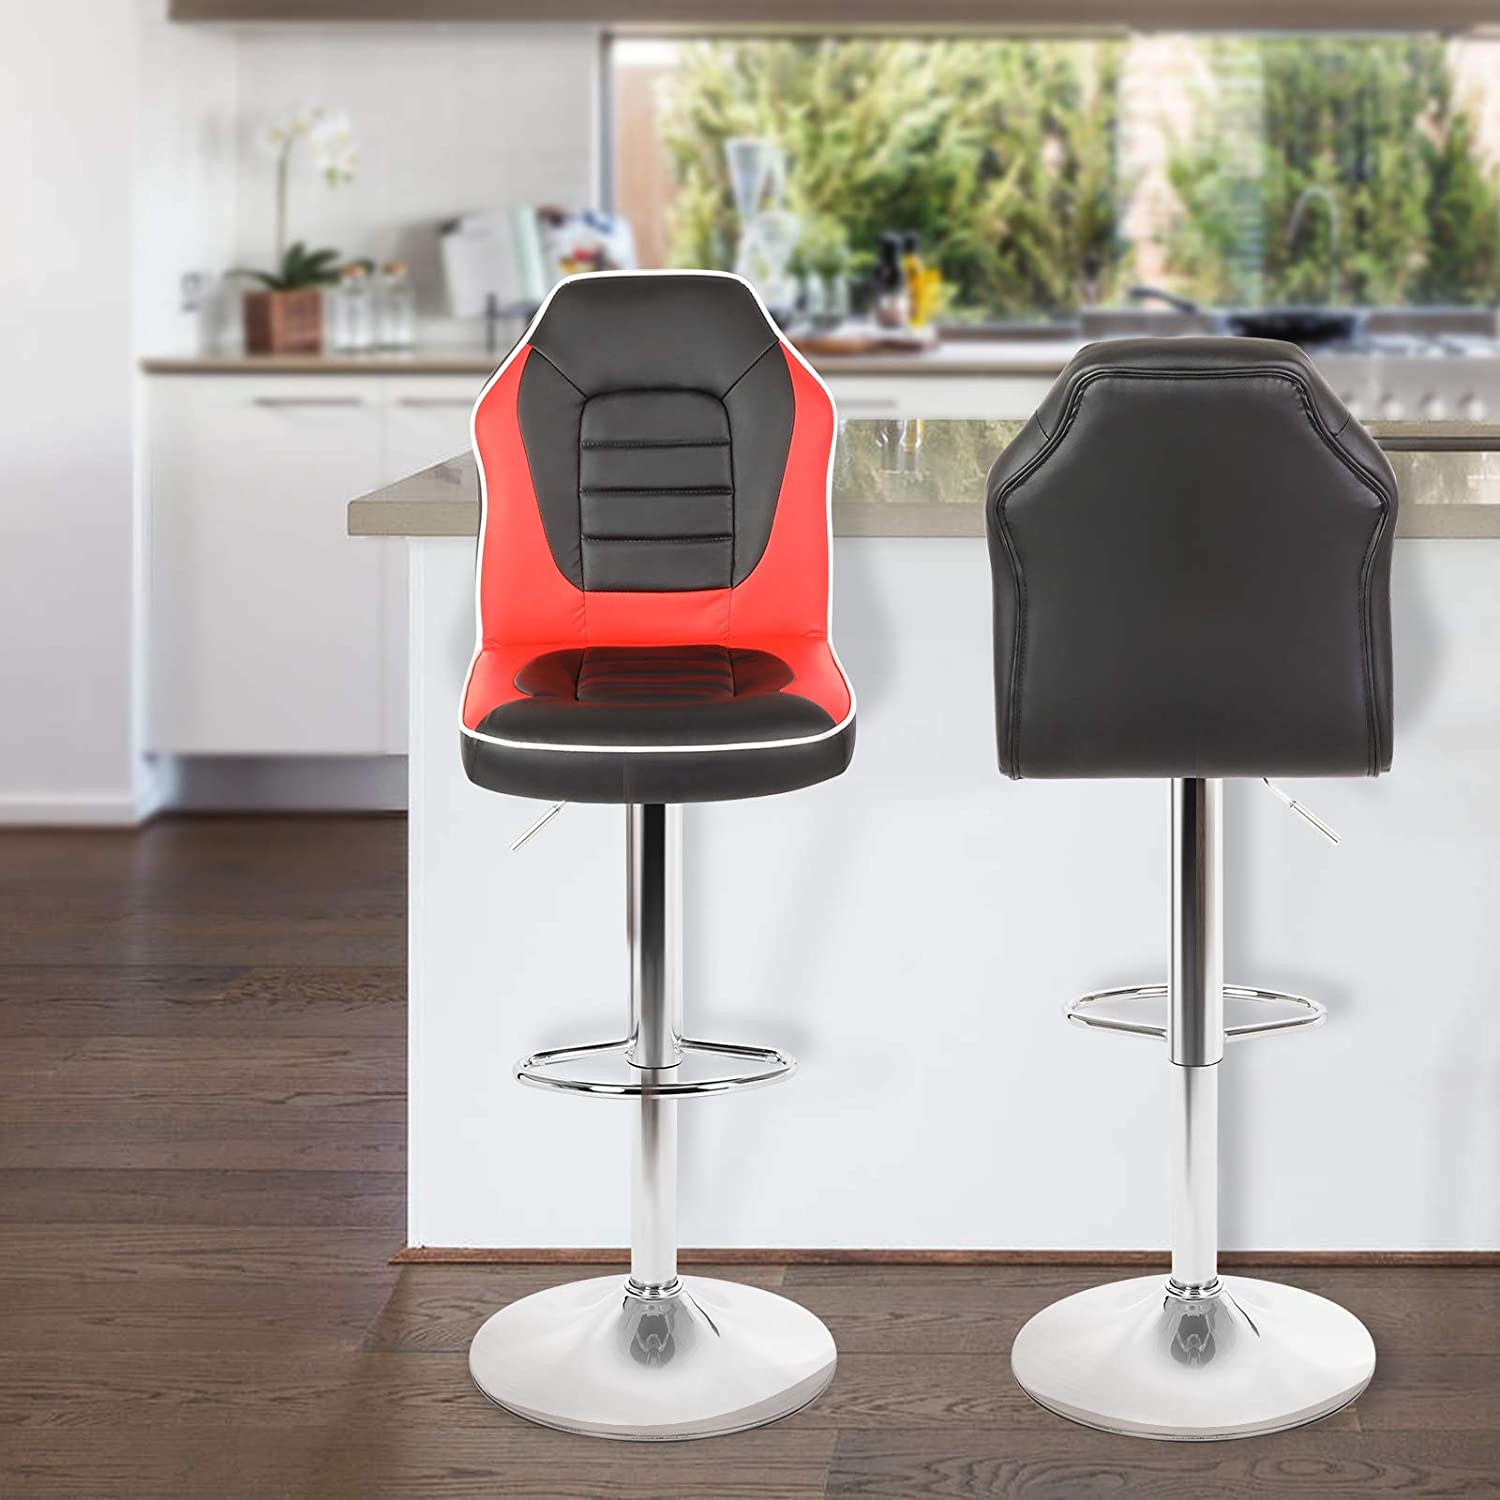 Magshion Extra Comfort Modern Racing Seat Bar Stools Chair Adjustable Swivel Mixed Color Set of 2 (Black/Red)